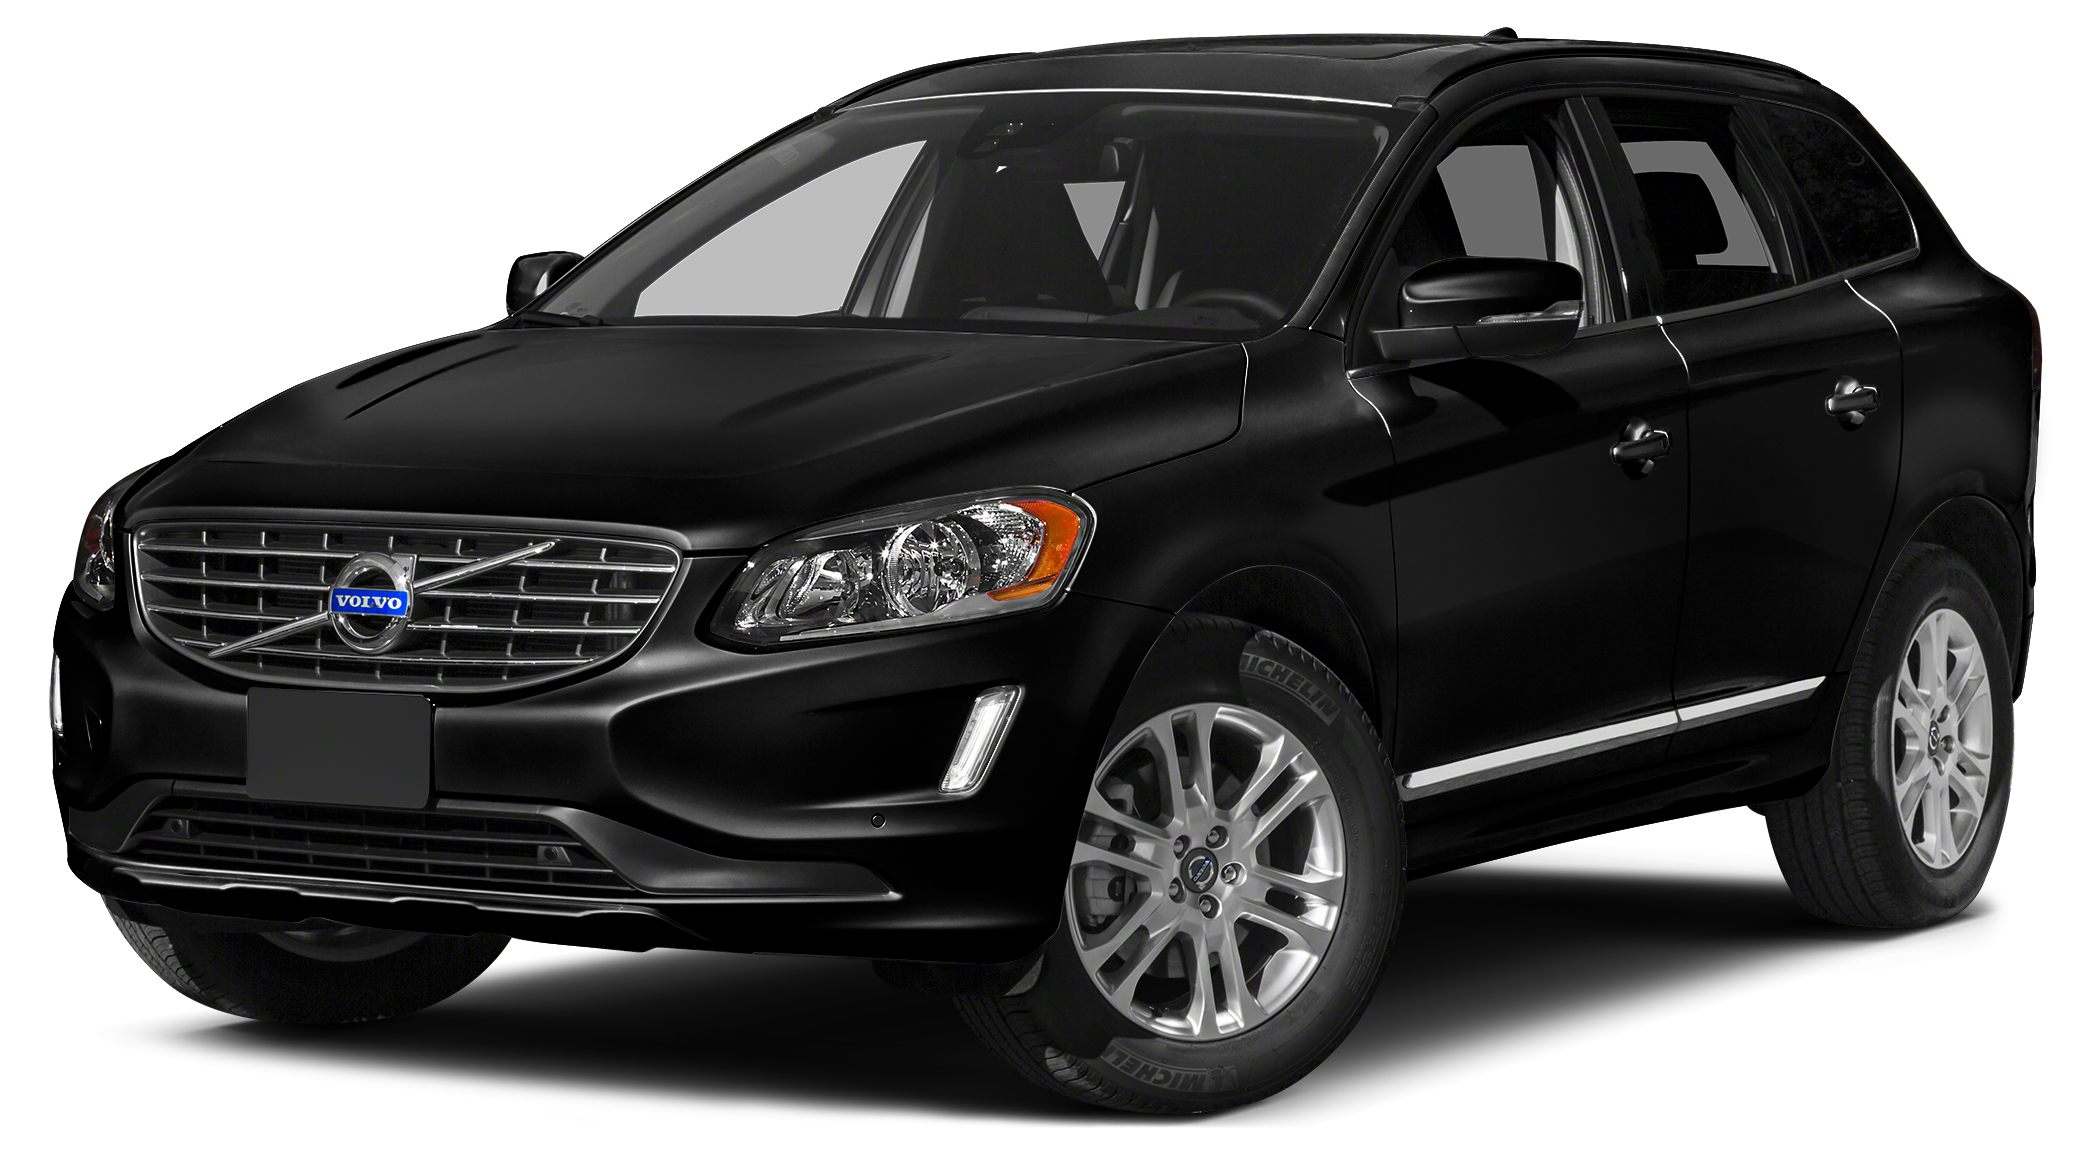 2016 Volvo XC60 T5 Premier TWO OWNER 2016 VOLVO XC60 T5 PREMIERCLEAN CAR FAXSturdy and dependa